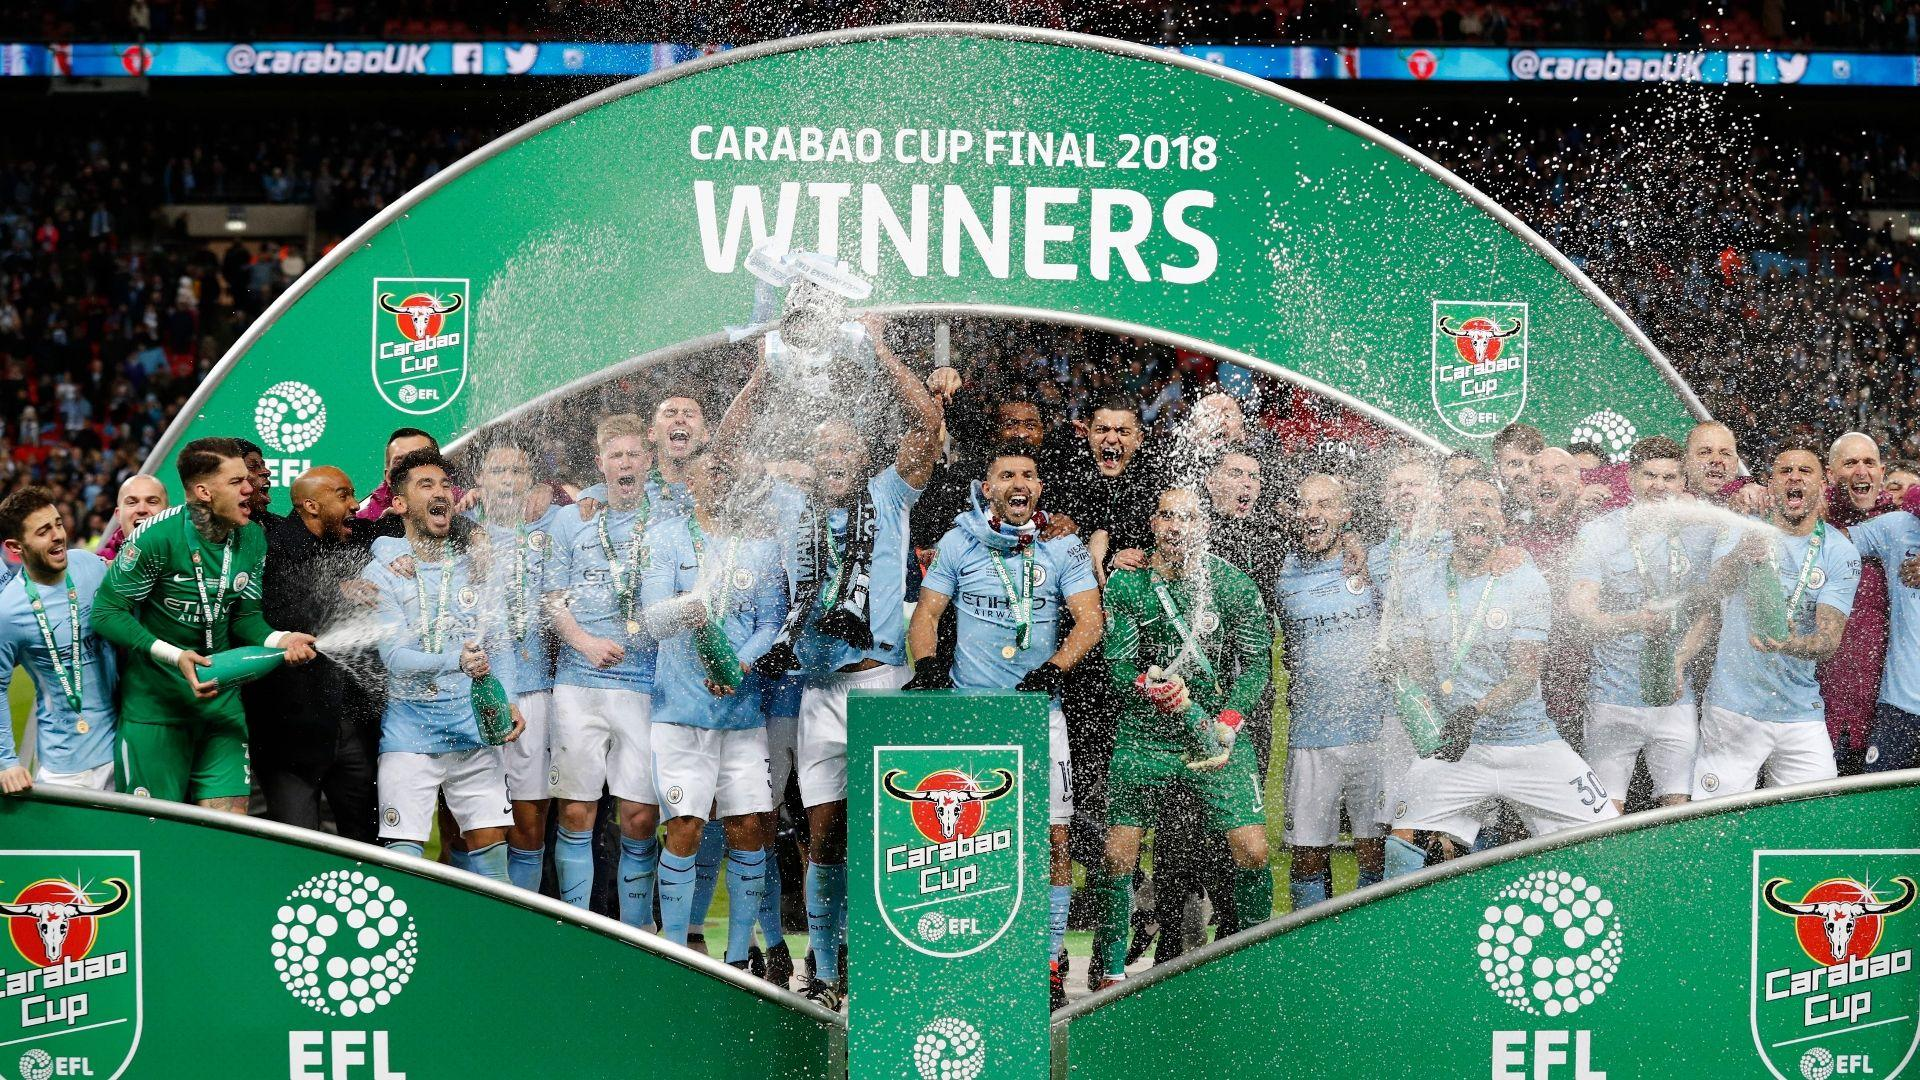 Carabao Cup 2018-19: Fixtures, teams, draw dates & all you need to ...